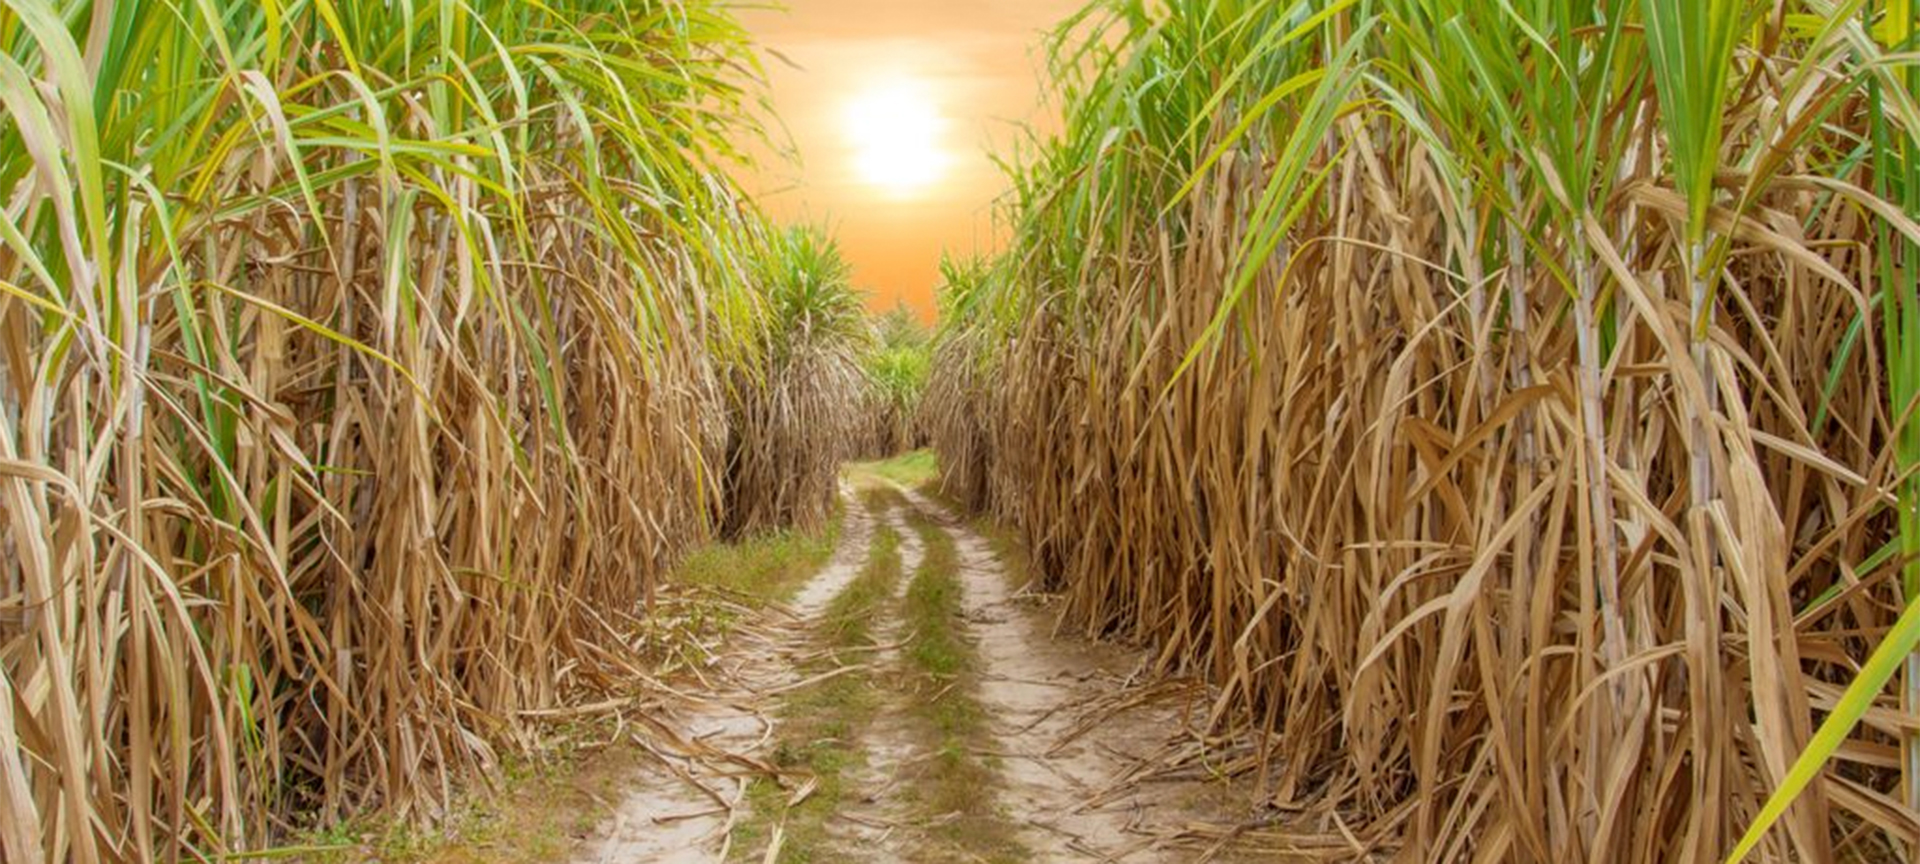 Over 62% of the world's sugar comes from sugarcane. Currently, sugarcane is planted on approximately 440,000 acres in the Everglades Agricultural Area (EAA), making it the most extensively grown row crop in Florida. Production is primarily on land along or near the southern half of Lake Okeechobee.